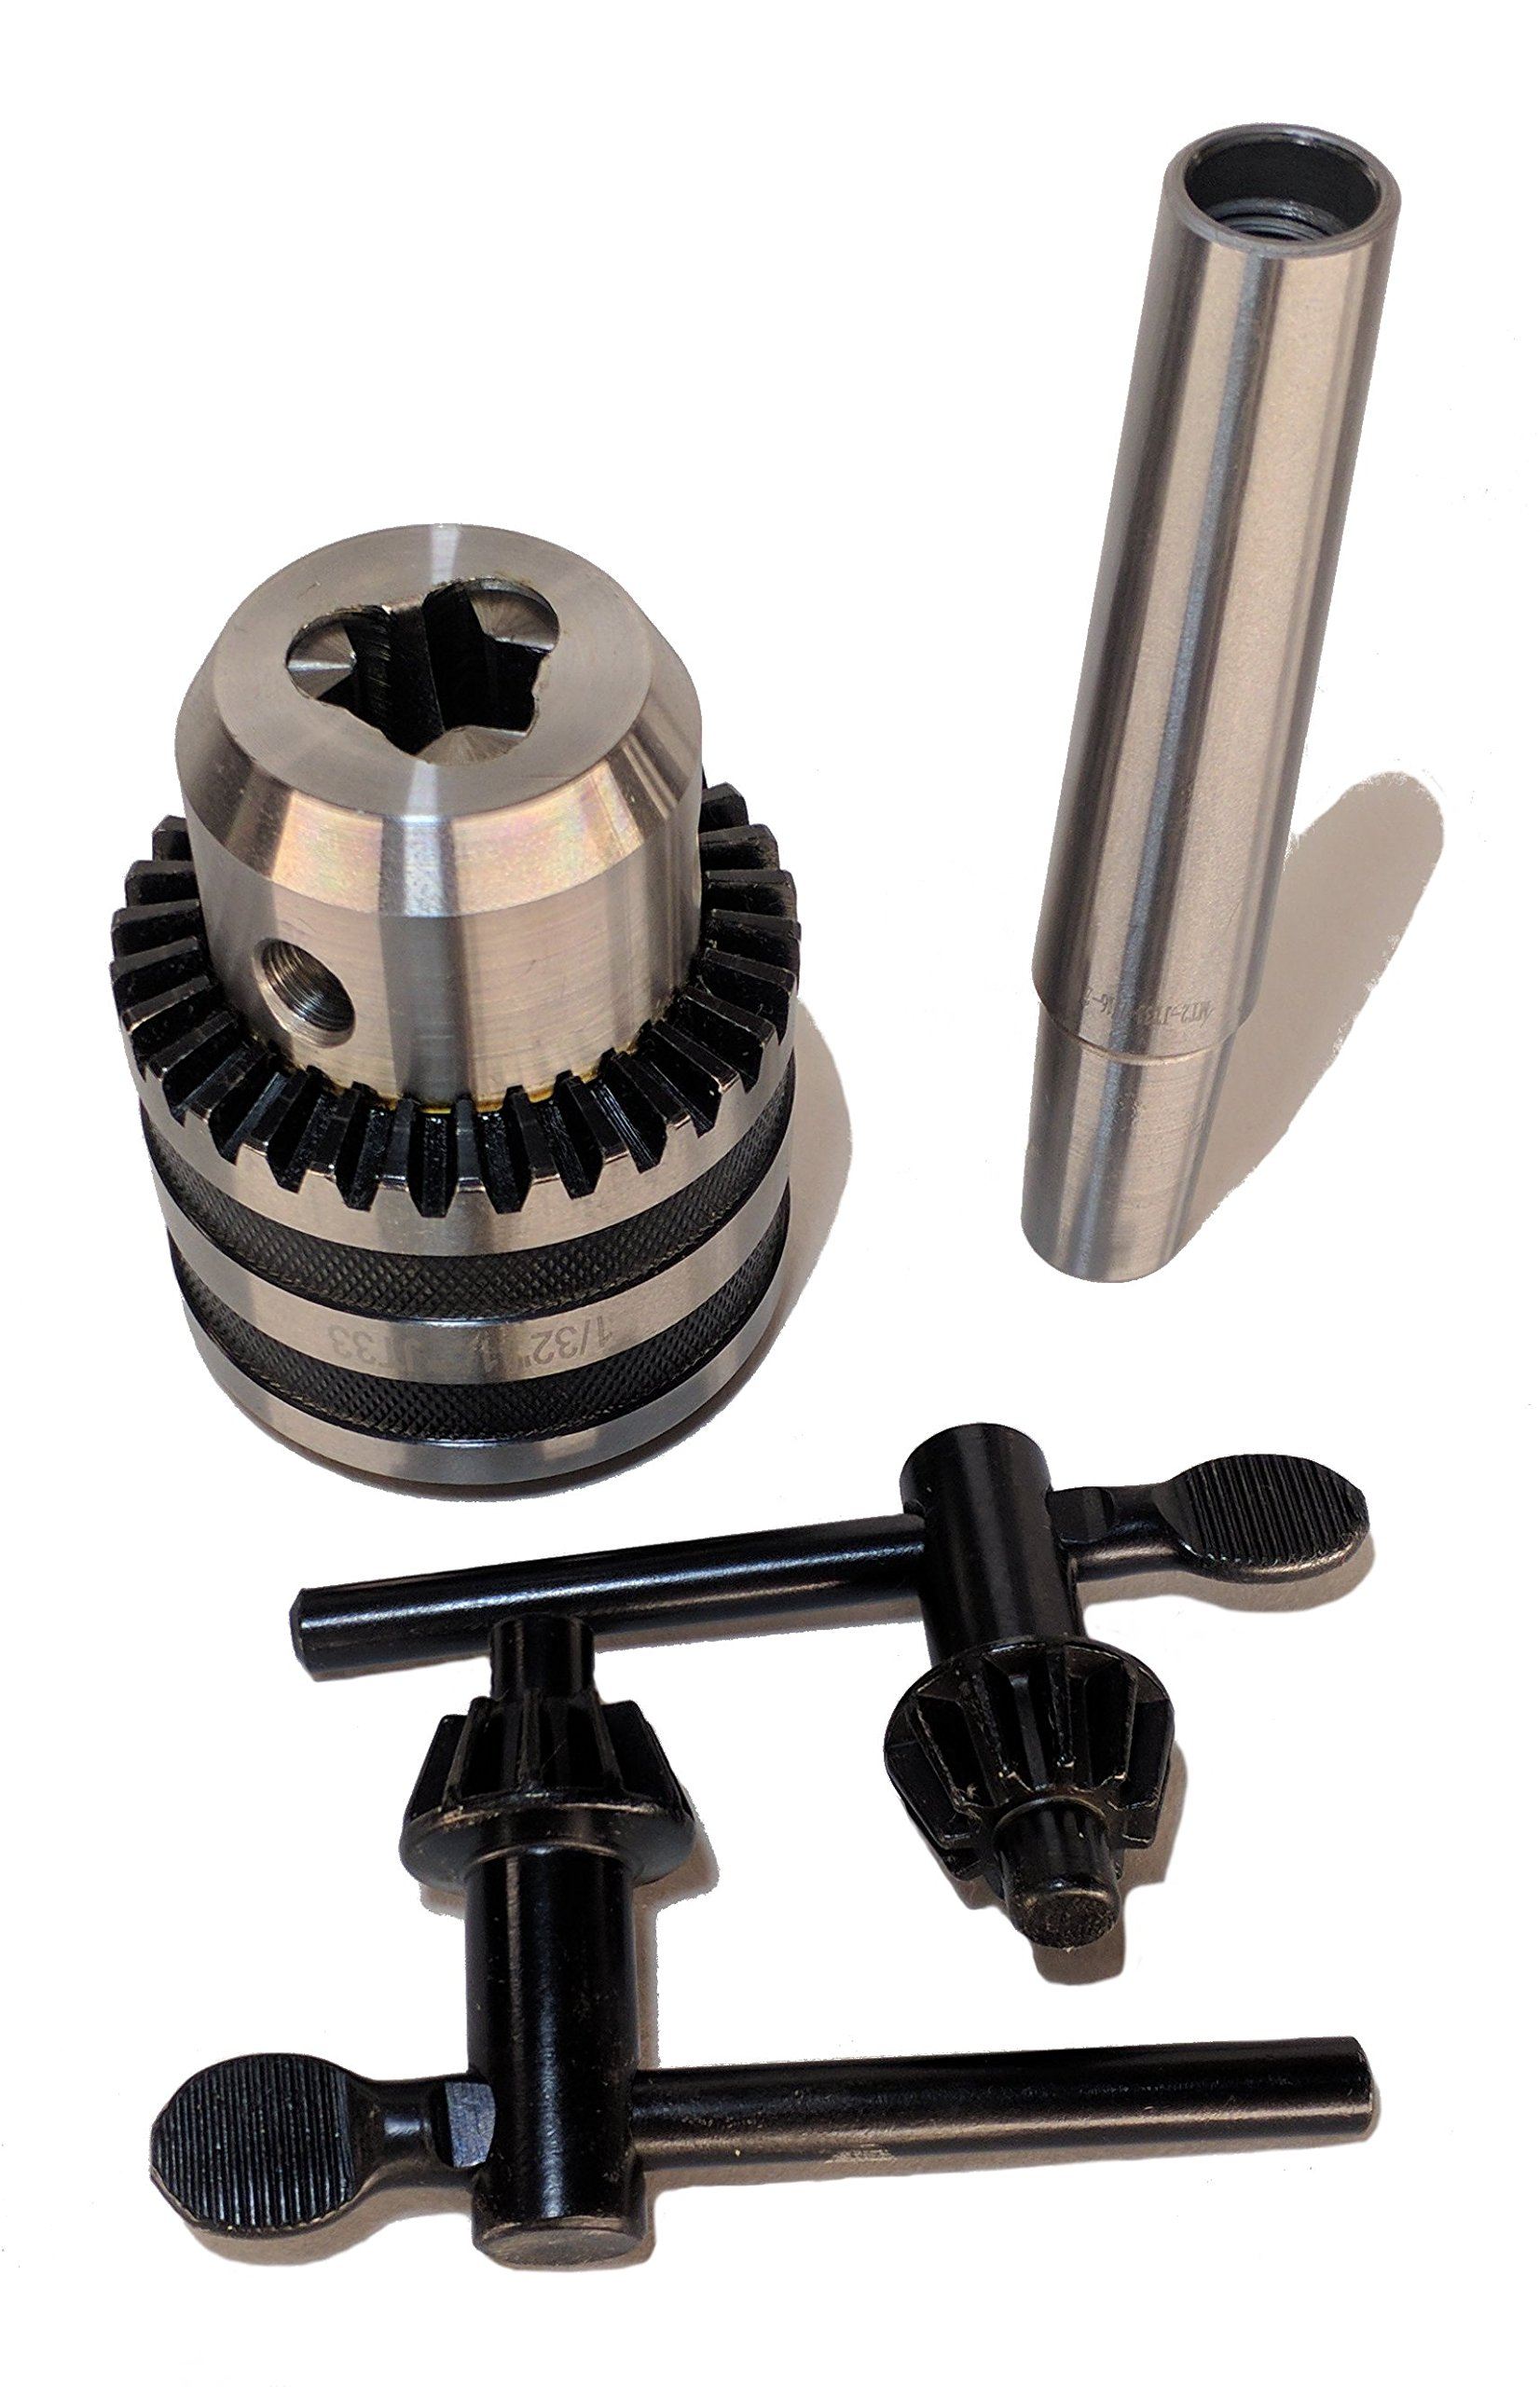 1/2'' JT33 Drill Chuck 2 MT Arbor/Mount for Lathes and Drill Presses Two Keys